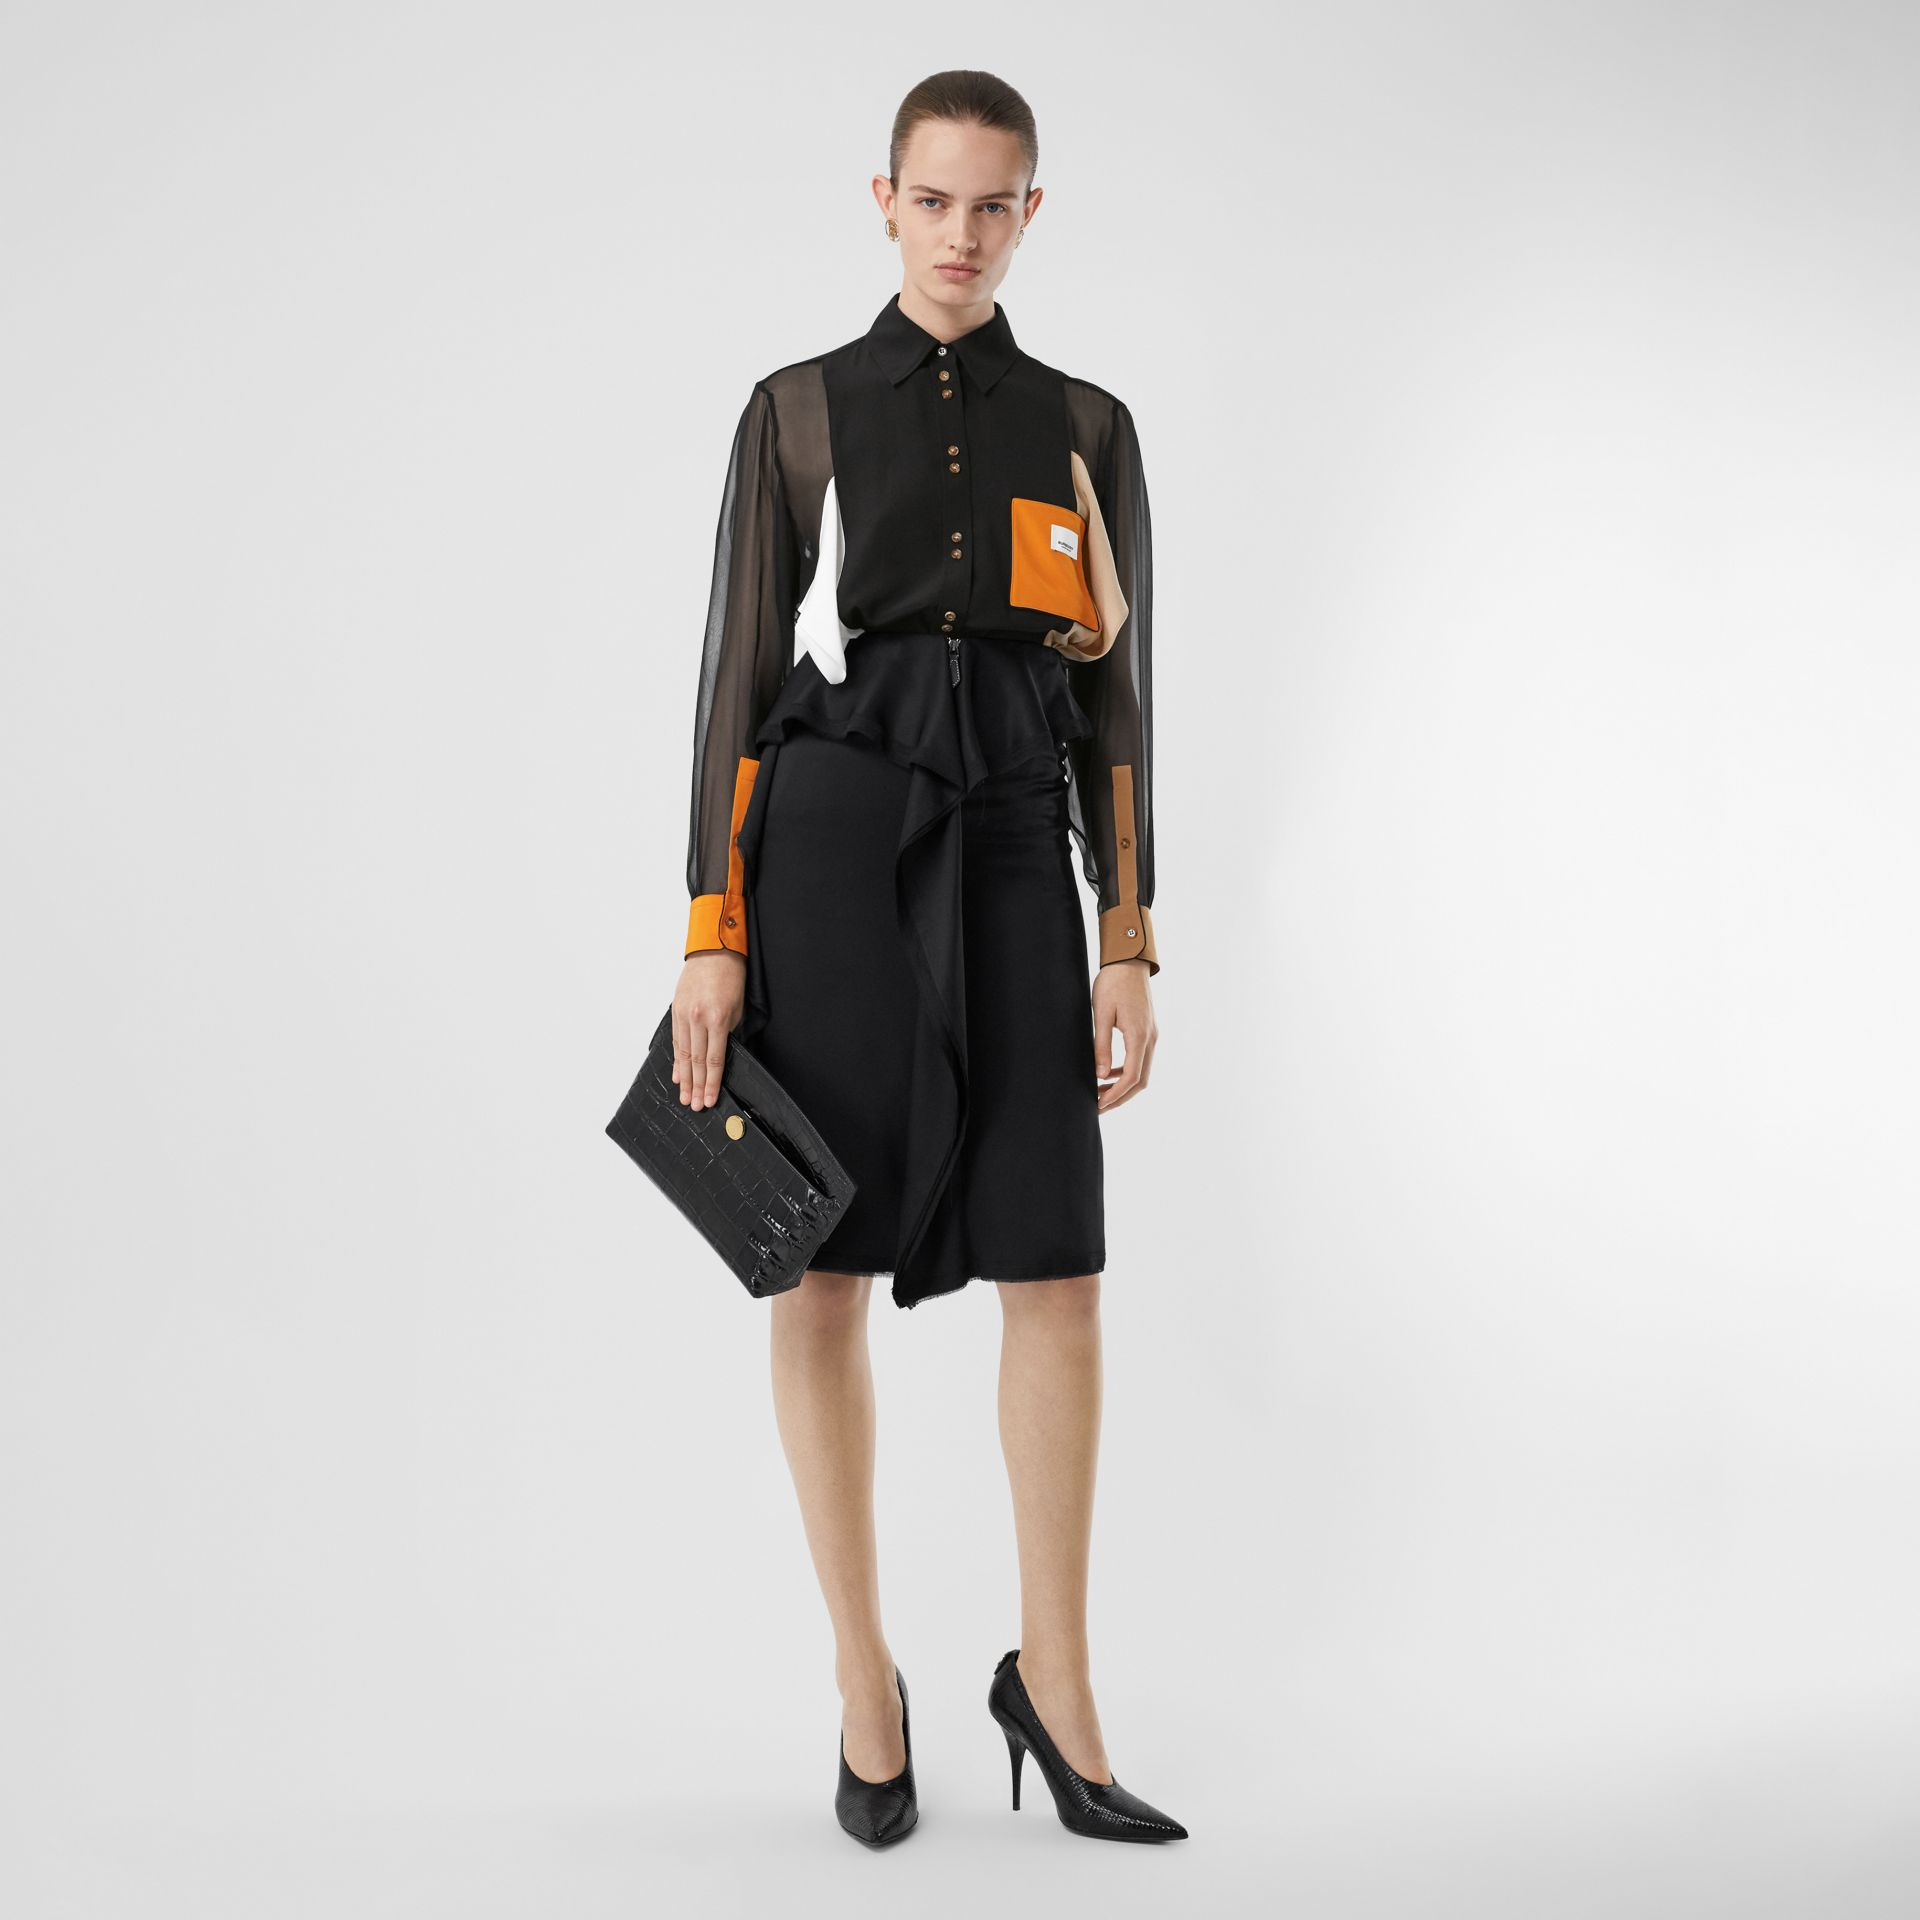 Colour Block Silk Shirt in Black - Women | Burberry United Kingdom - gallery image 5